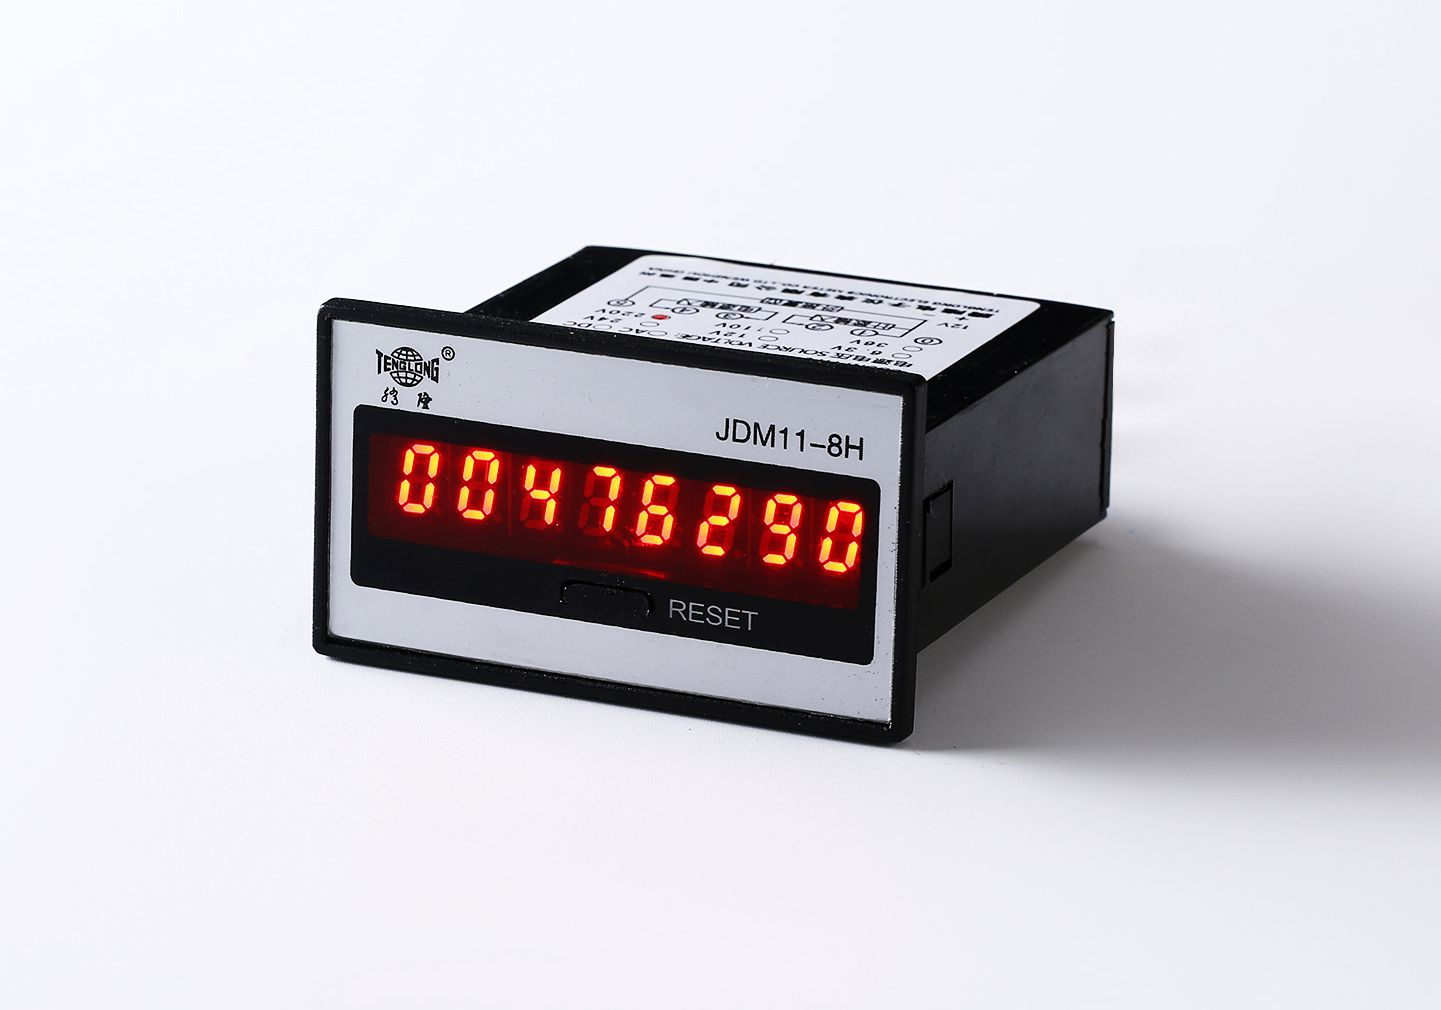 Electronic Counter 8 bit Digital Display Counter Electronic Accumulation Counter JDM 11 8H